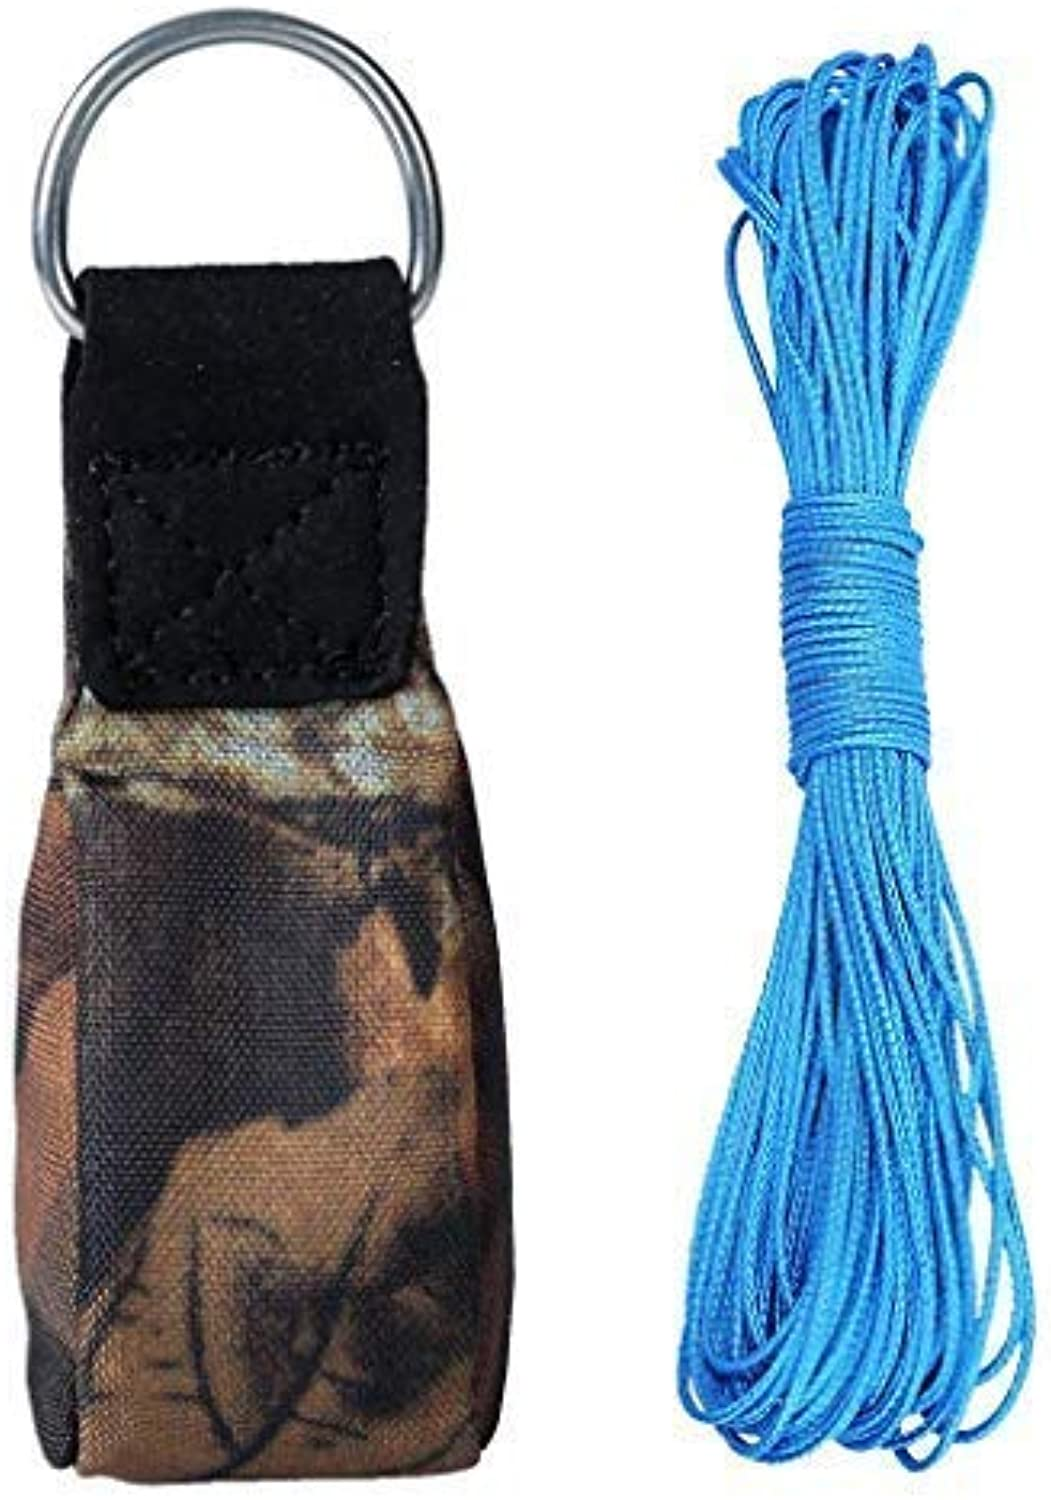 Yundxi Throw Weight Bags Pouches with 30m Line for Climbing Tree Arborist & Tree Swing Inssizetion